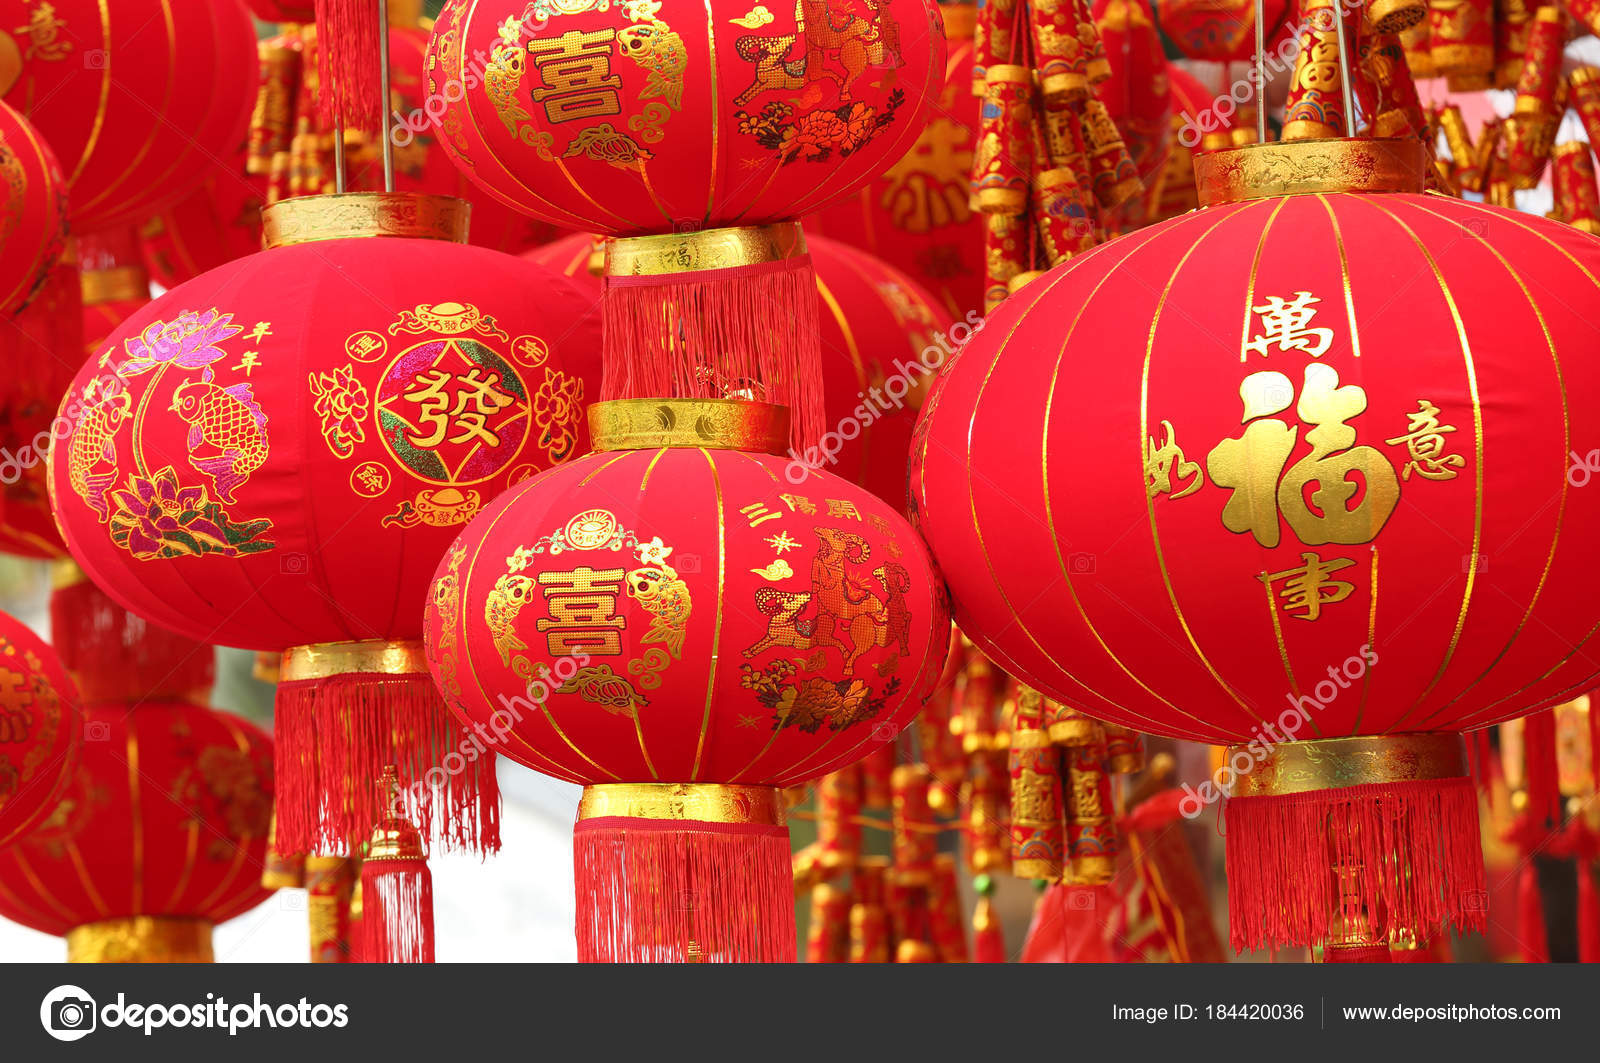 Chinese New Year Decor Lanterns Words Meaning Best Wishes New     Chinese new year decor lanterns with words meaning best wishes for the new  year     Photo by lzf